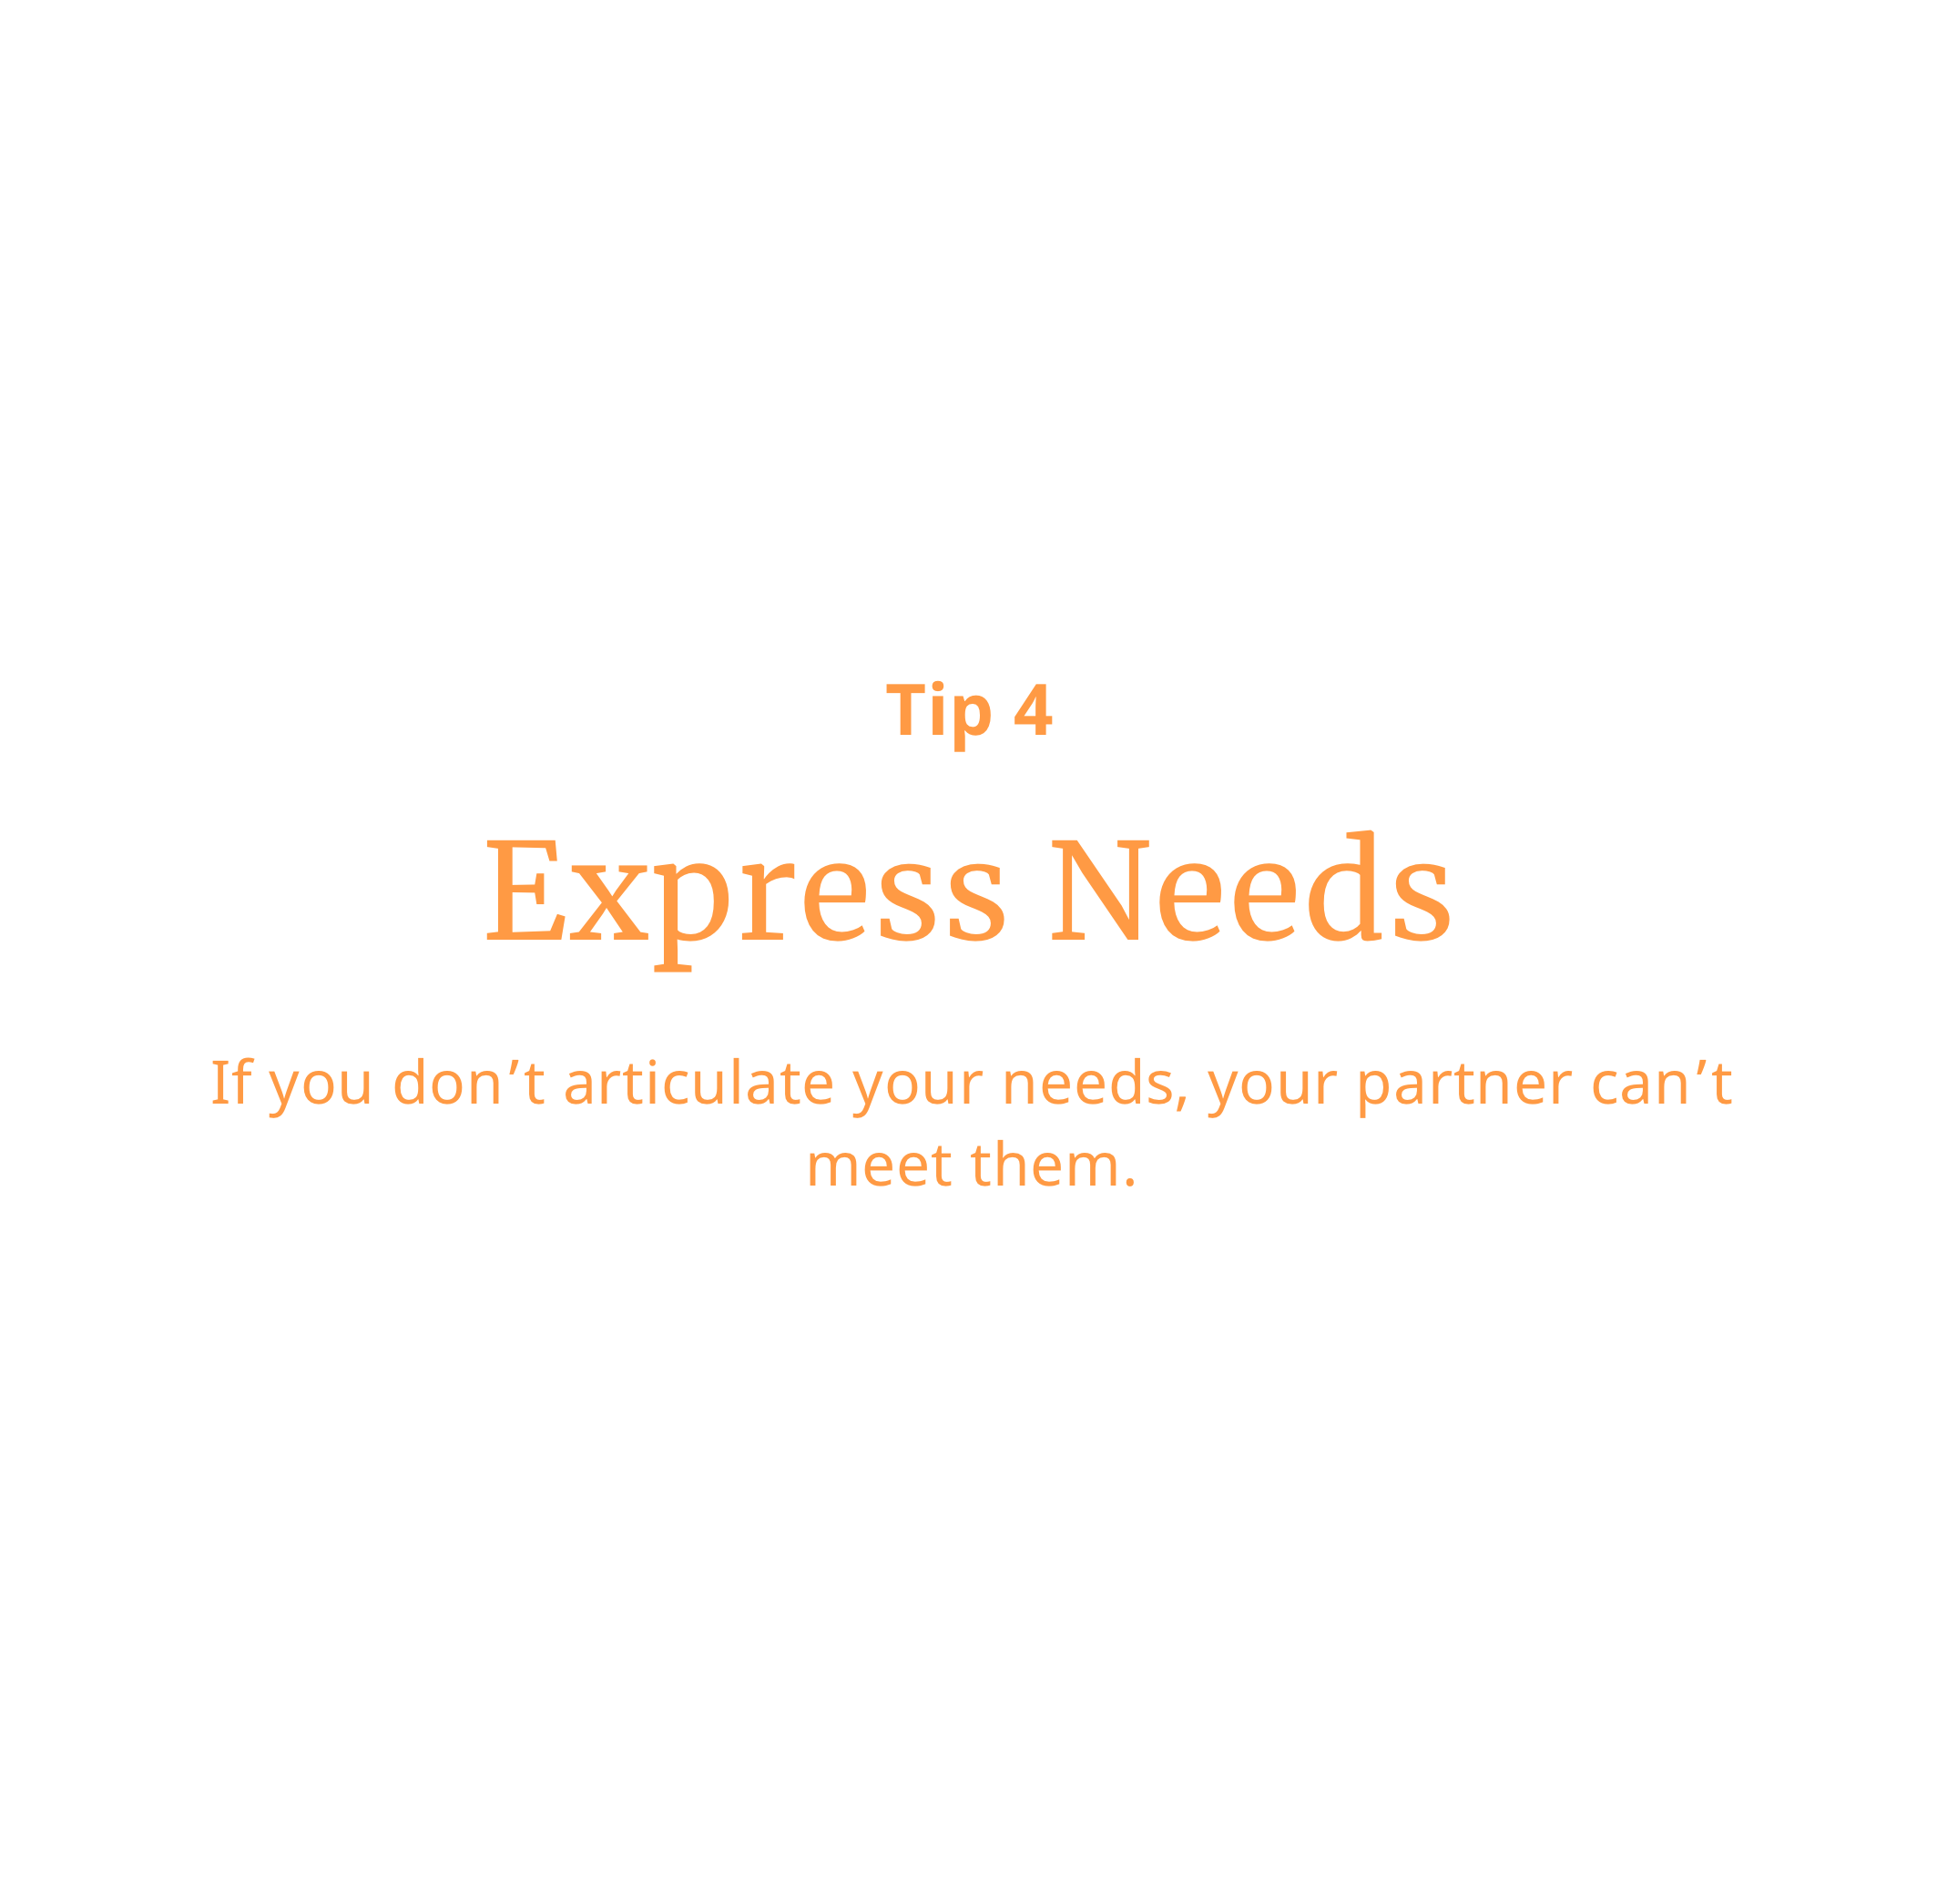 Tip 4@3x.png